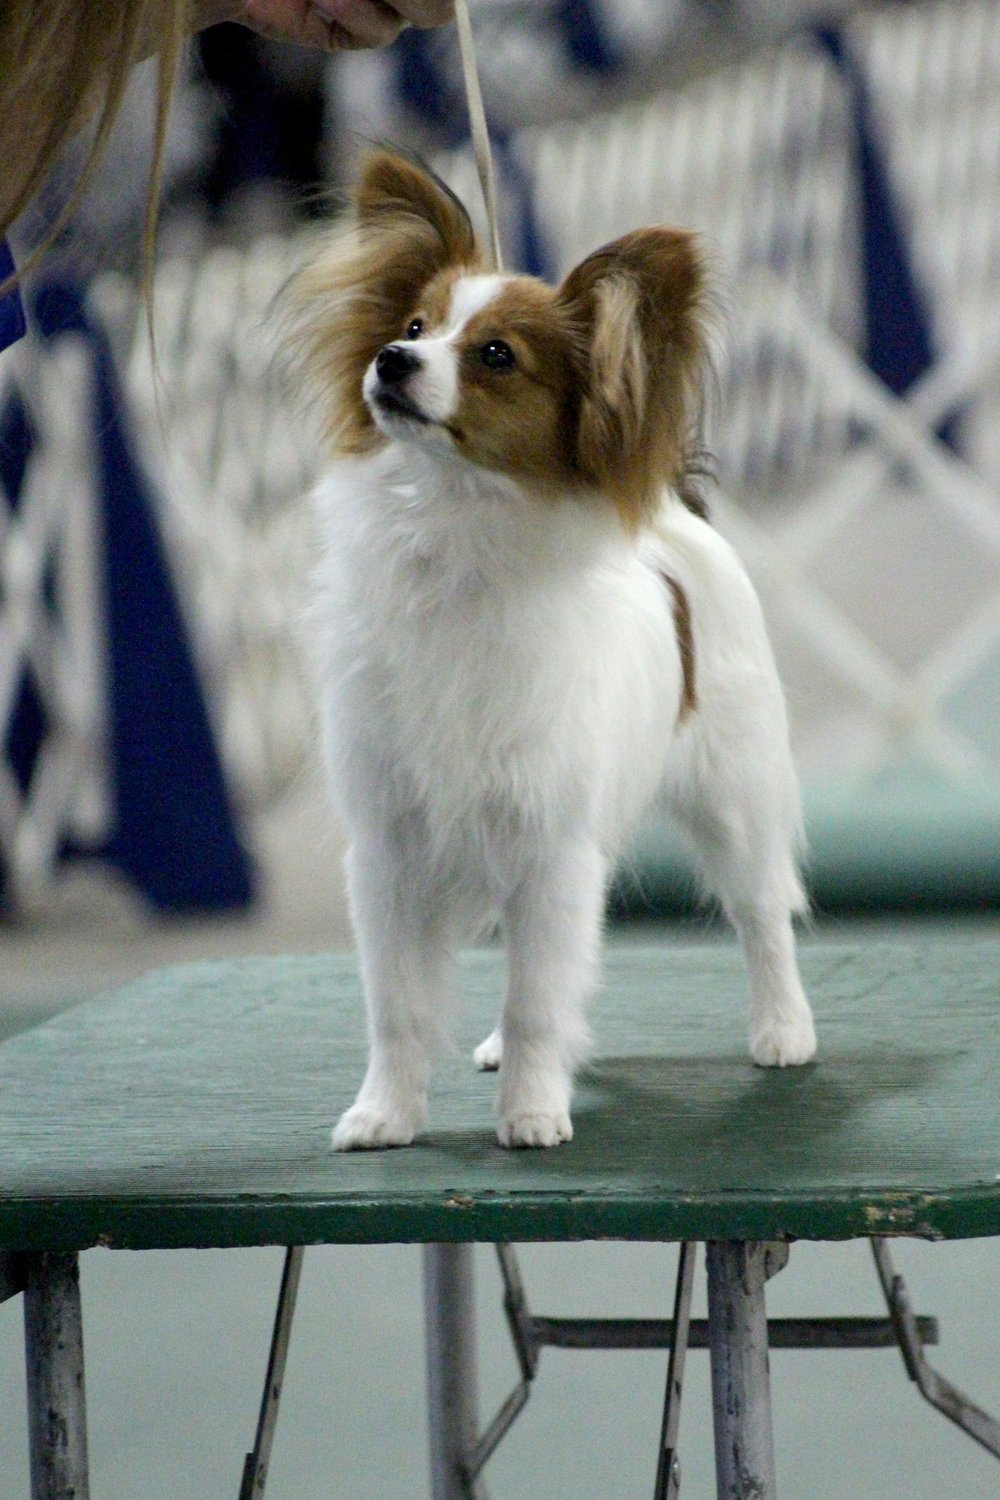 Star at her very first conformation show at the Kentuckiana Cluster of Dog shows March 2018, she was in the 6-9 month puppy class.